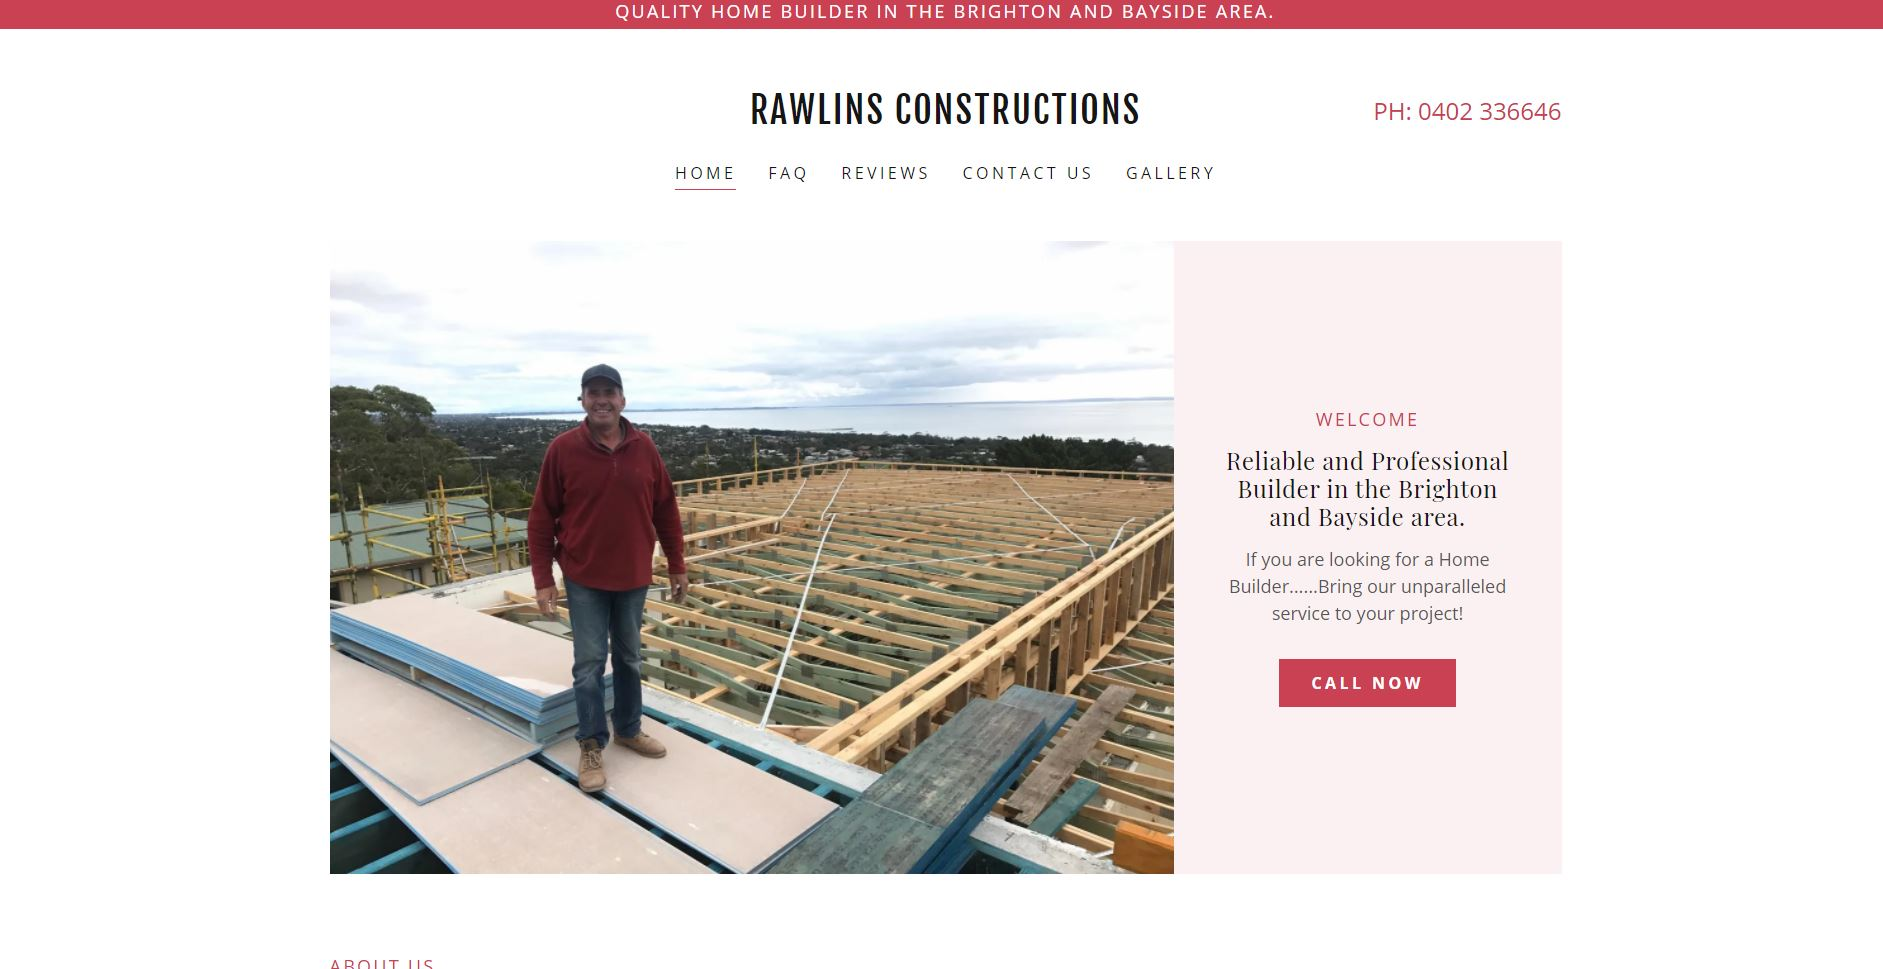 Rawlins Constructions